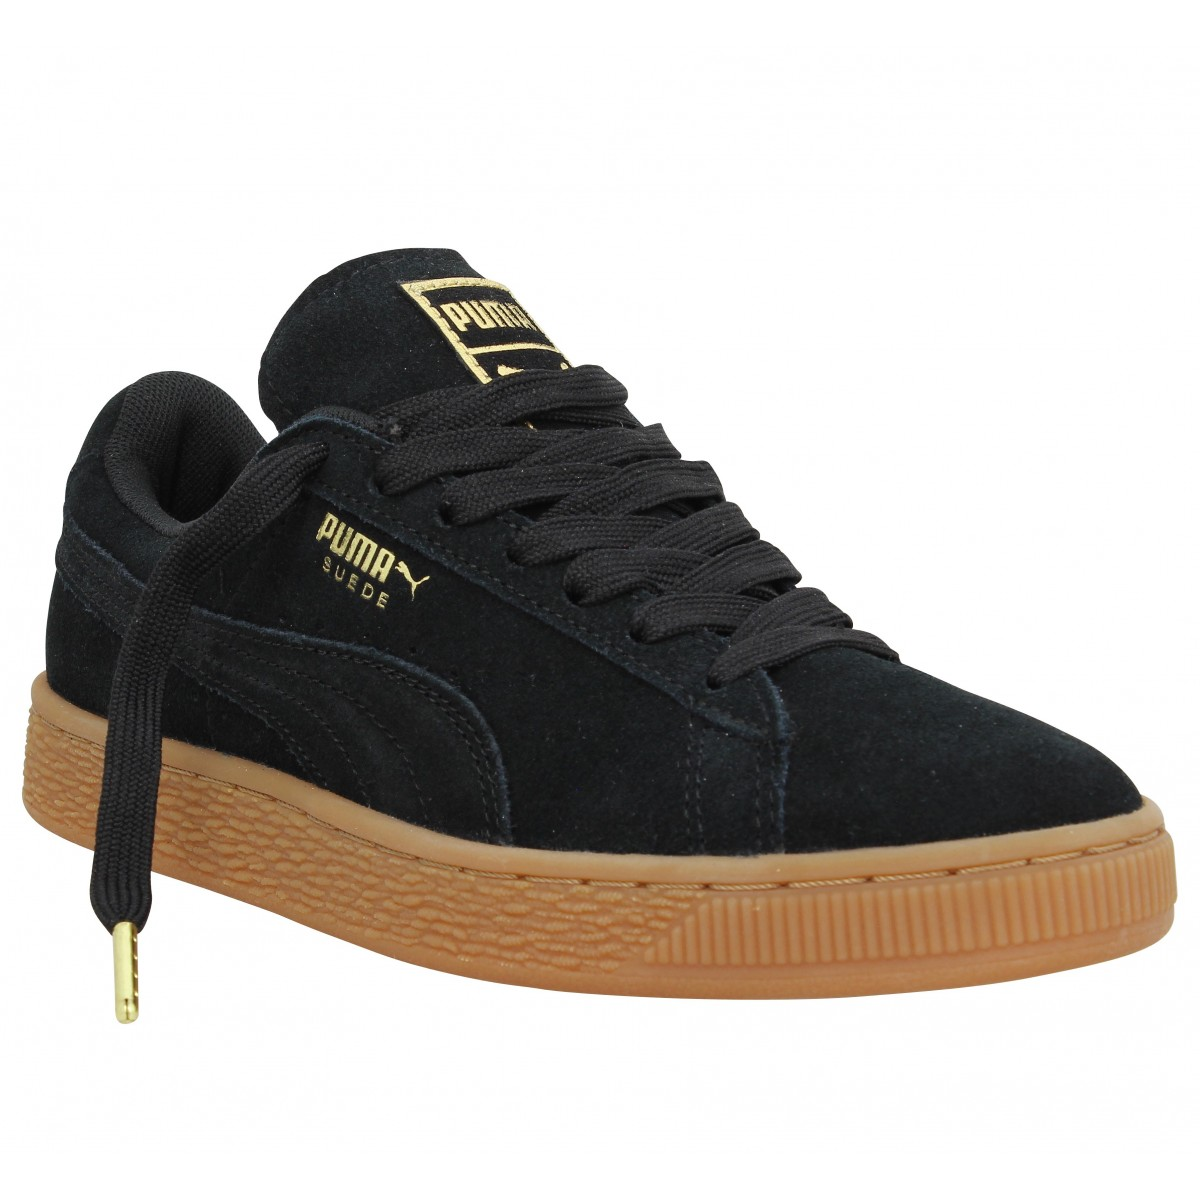 puma suede femme noir. Black Bedroom Furniture Sets. Home Design Ideas